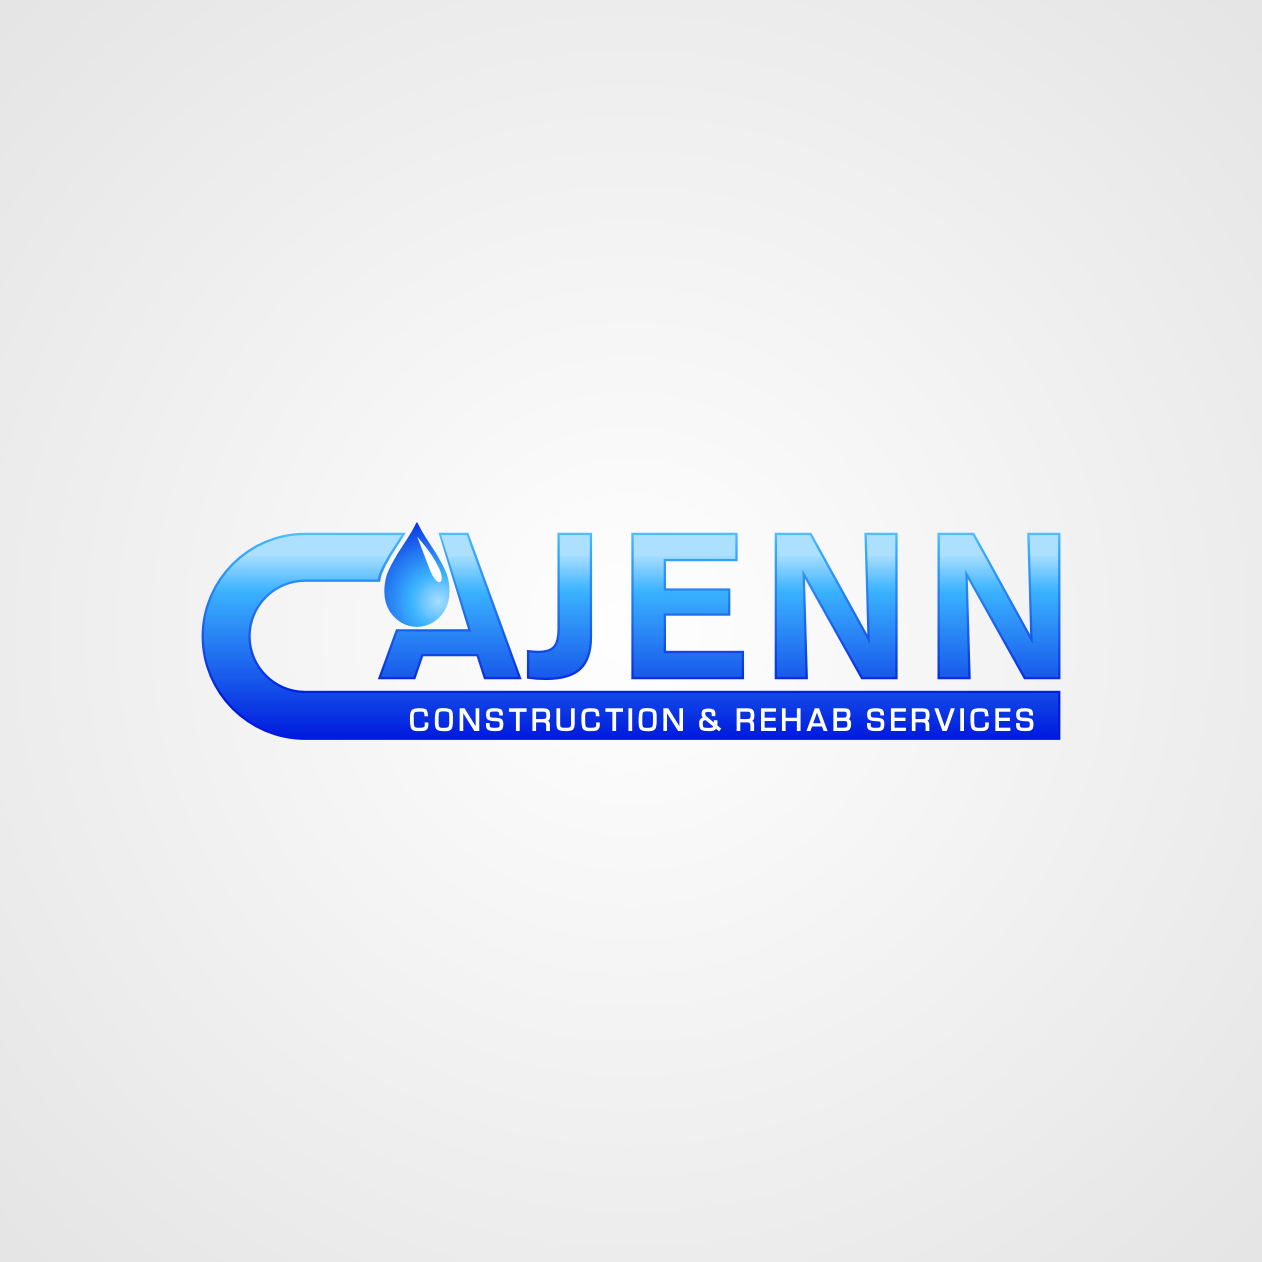 Logo Design by rifatz - Entry No. 99 in the Logo Design Contest New Logo Design for CaJenn Construction & Rehab Services.